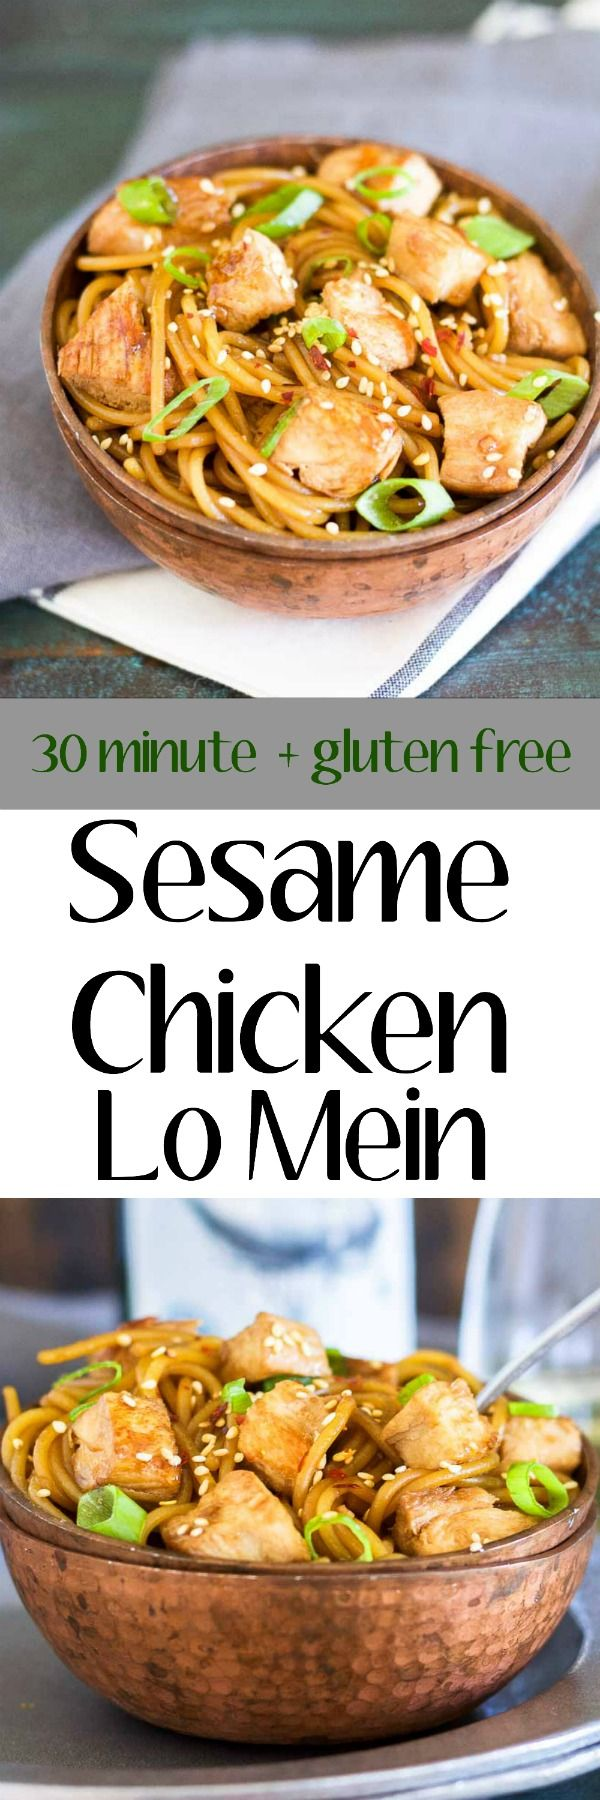 109 best easy asian recipes images on pinterest cooking food this sesame chicken lo mein is covered in a sweet sesame ginger and garlic sauce and korean recipesasian food forumfinder Images